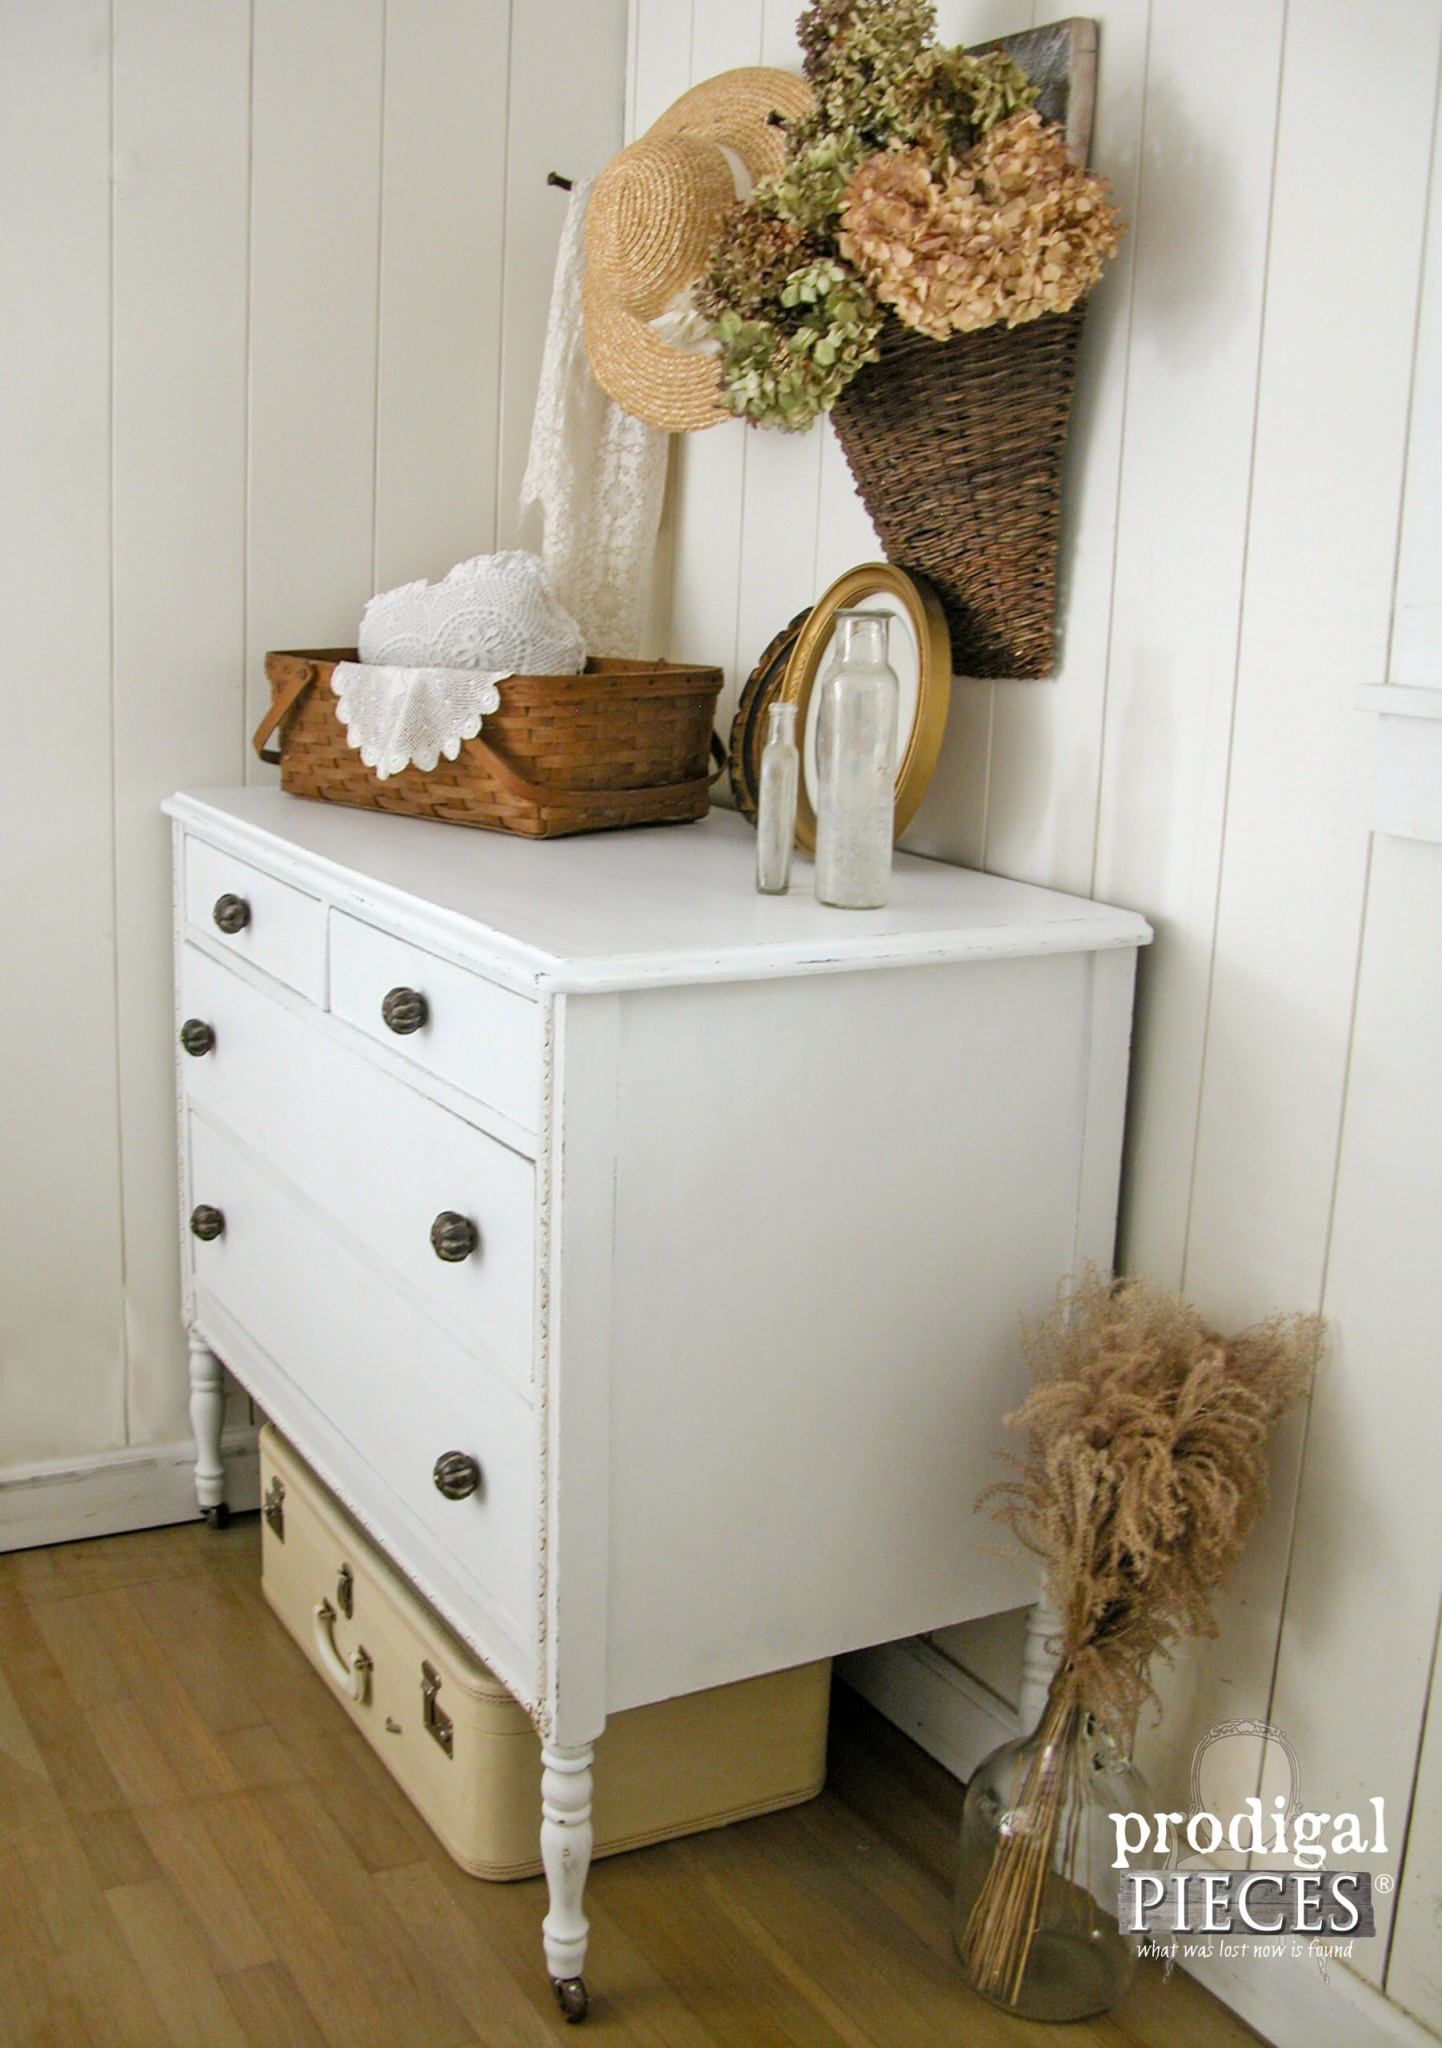 Rustic Chic White Farmhouse Dresser by Prodigal Pieces | www.prodigalpieces.com